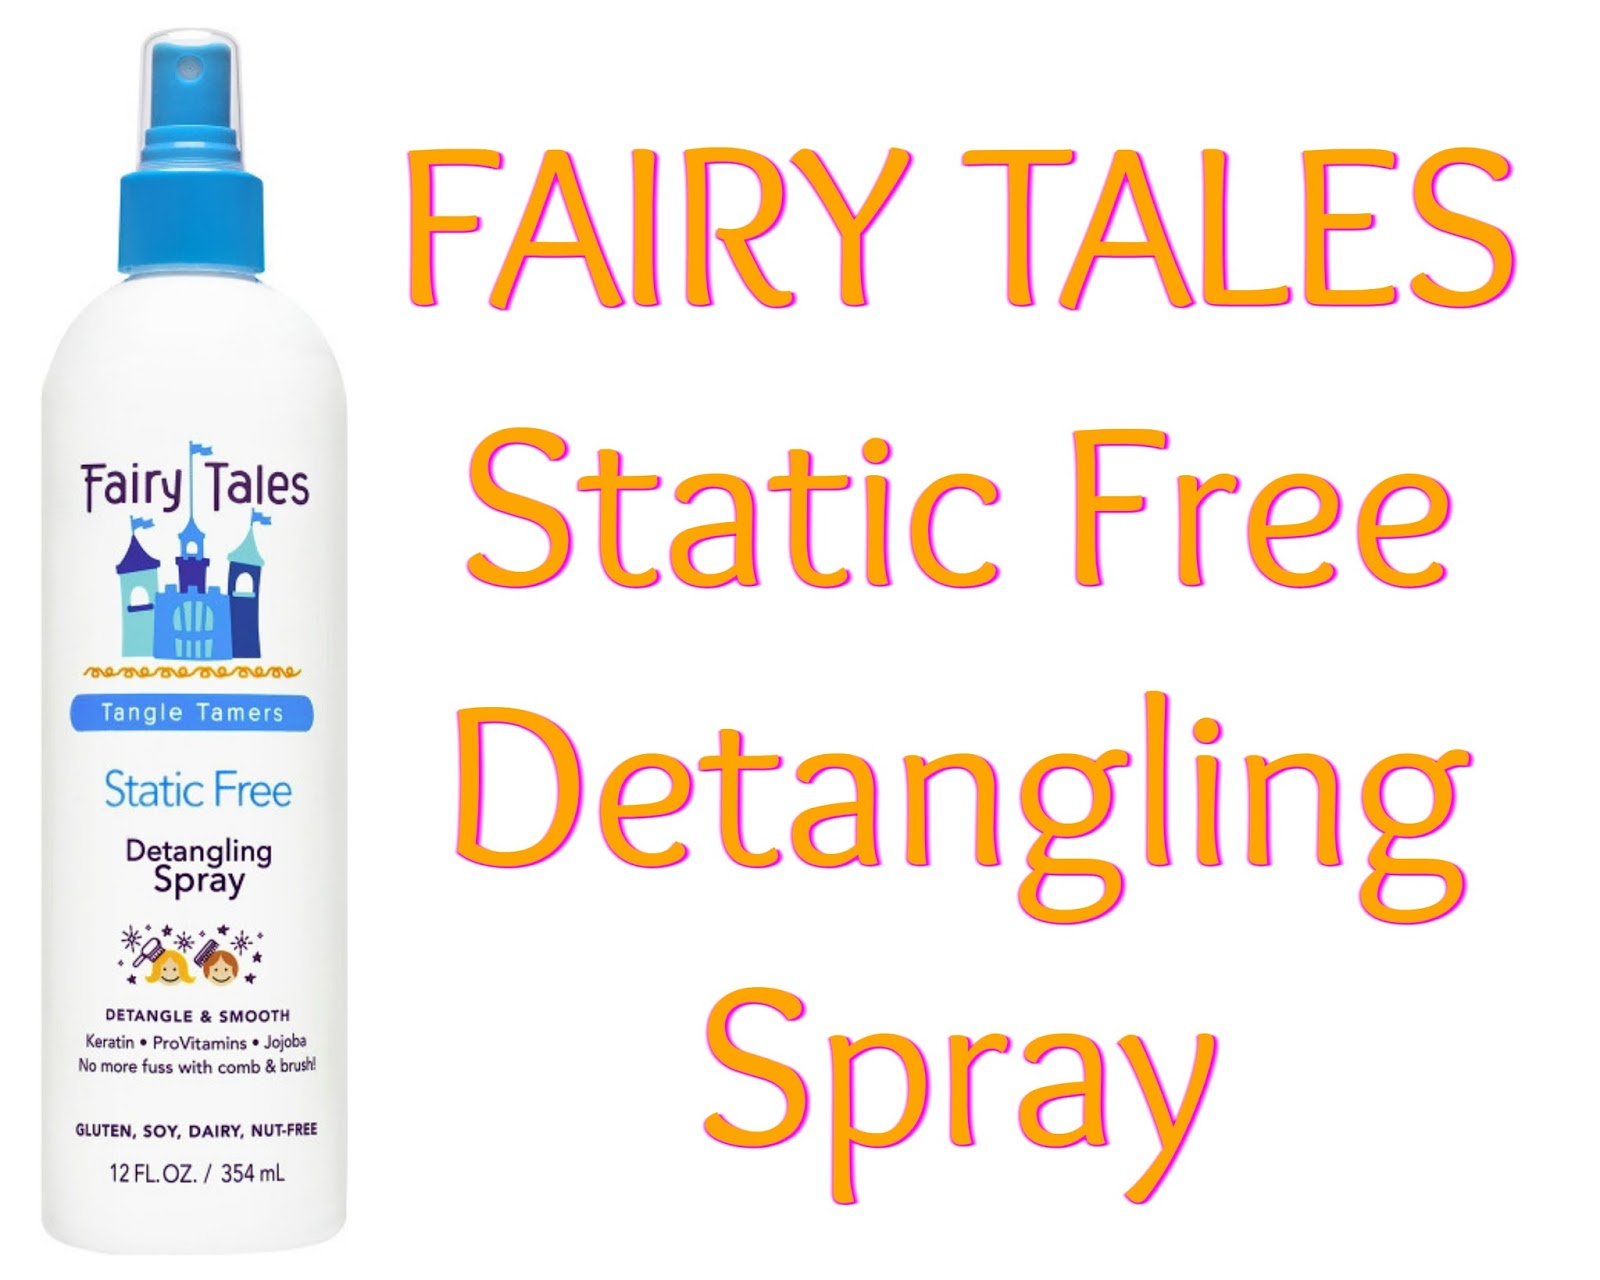 Click here to buy FAIRY TALES Static Free Detangling Spray to get rid of tangles and static.